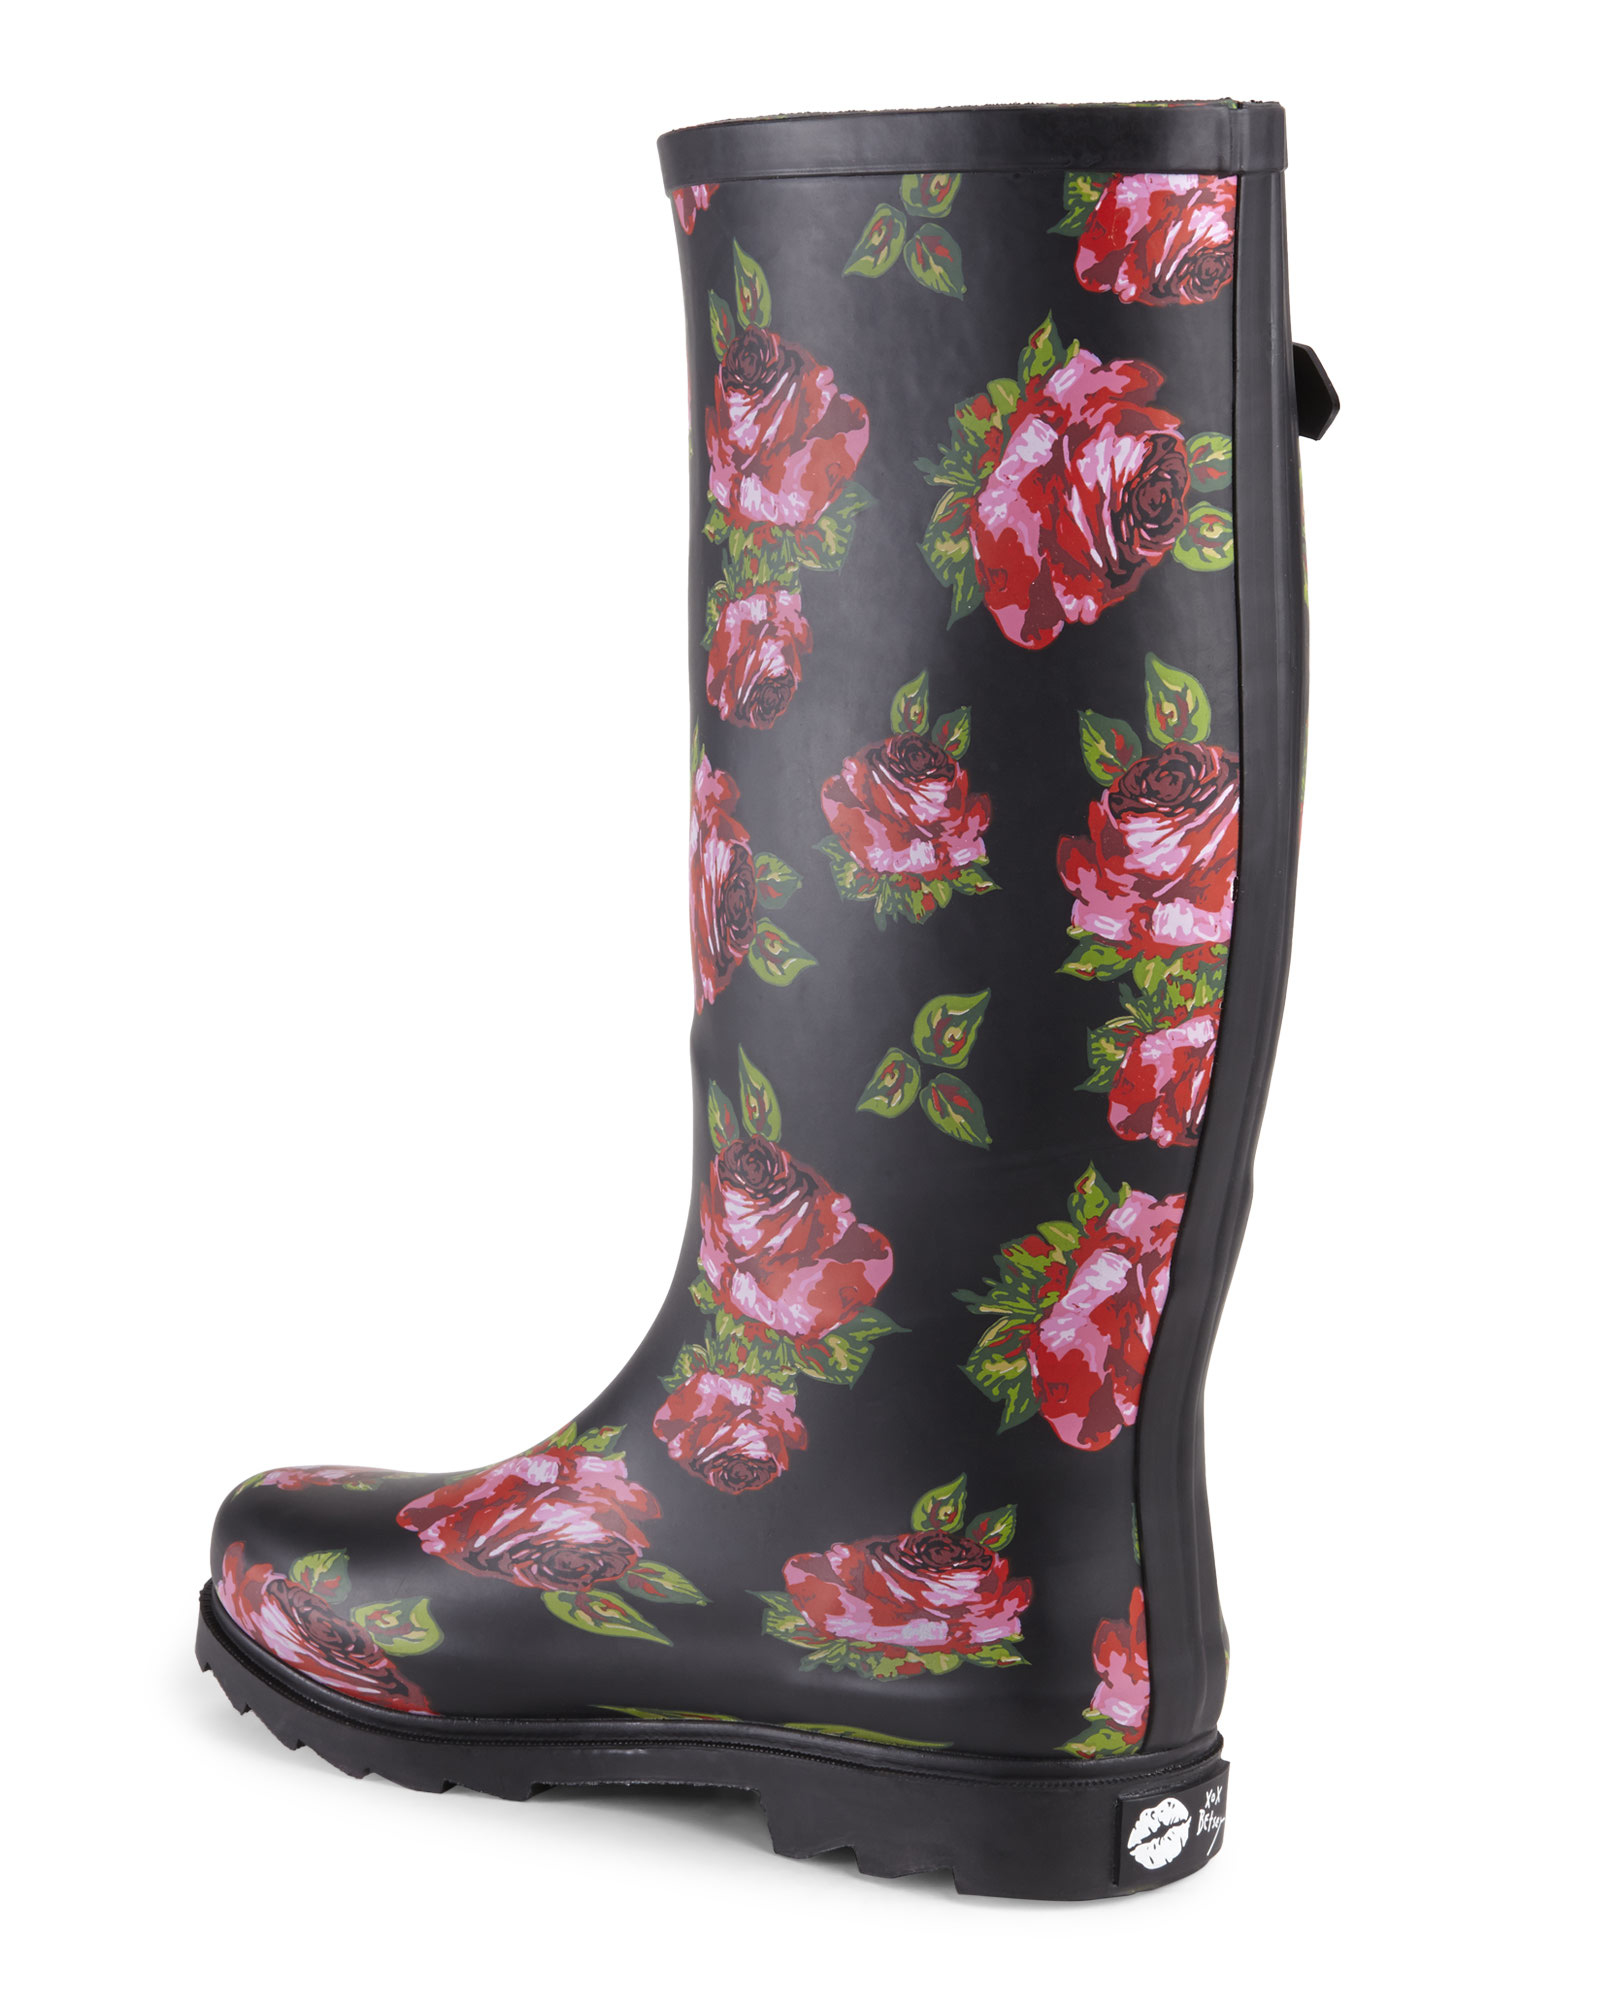 Betsey johnson Black Floral Drizle Rain Boots | Lyst